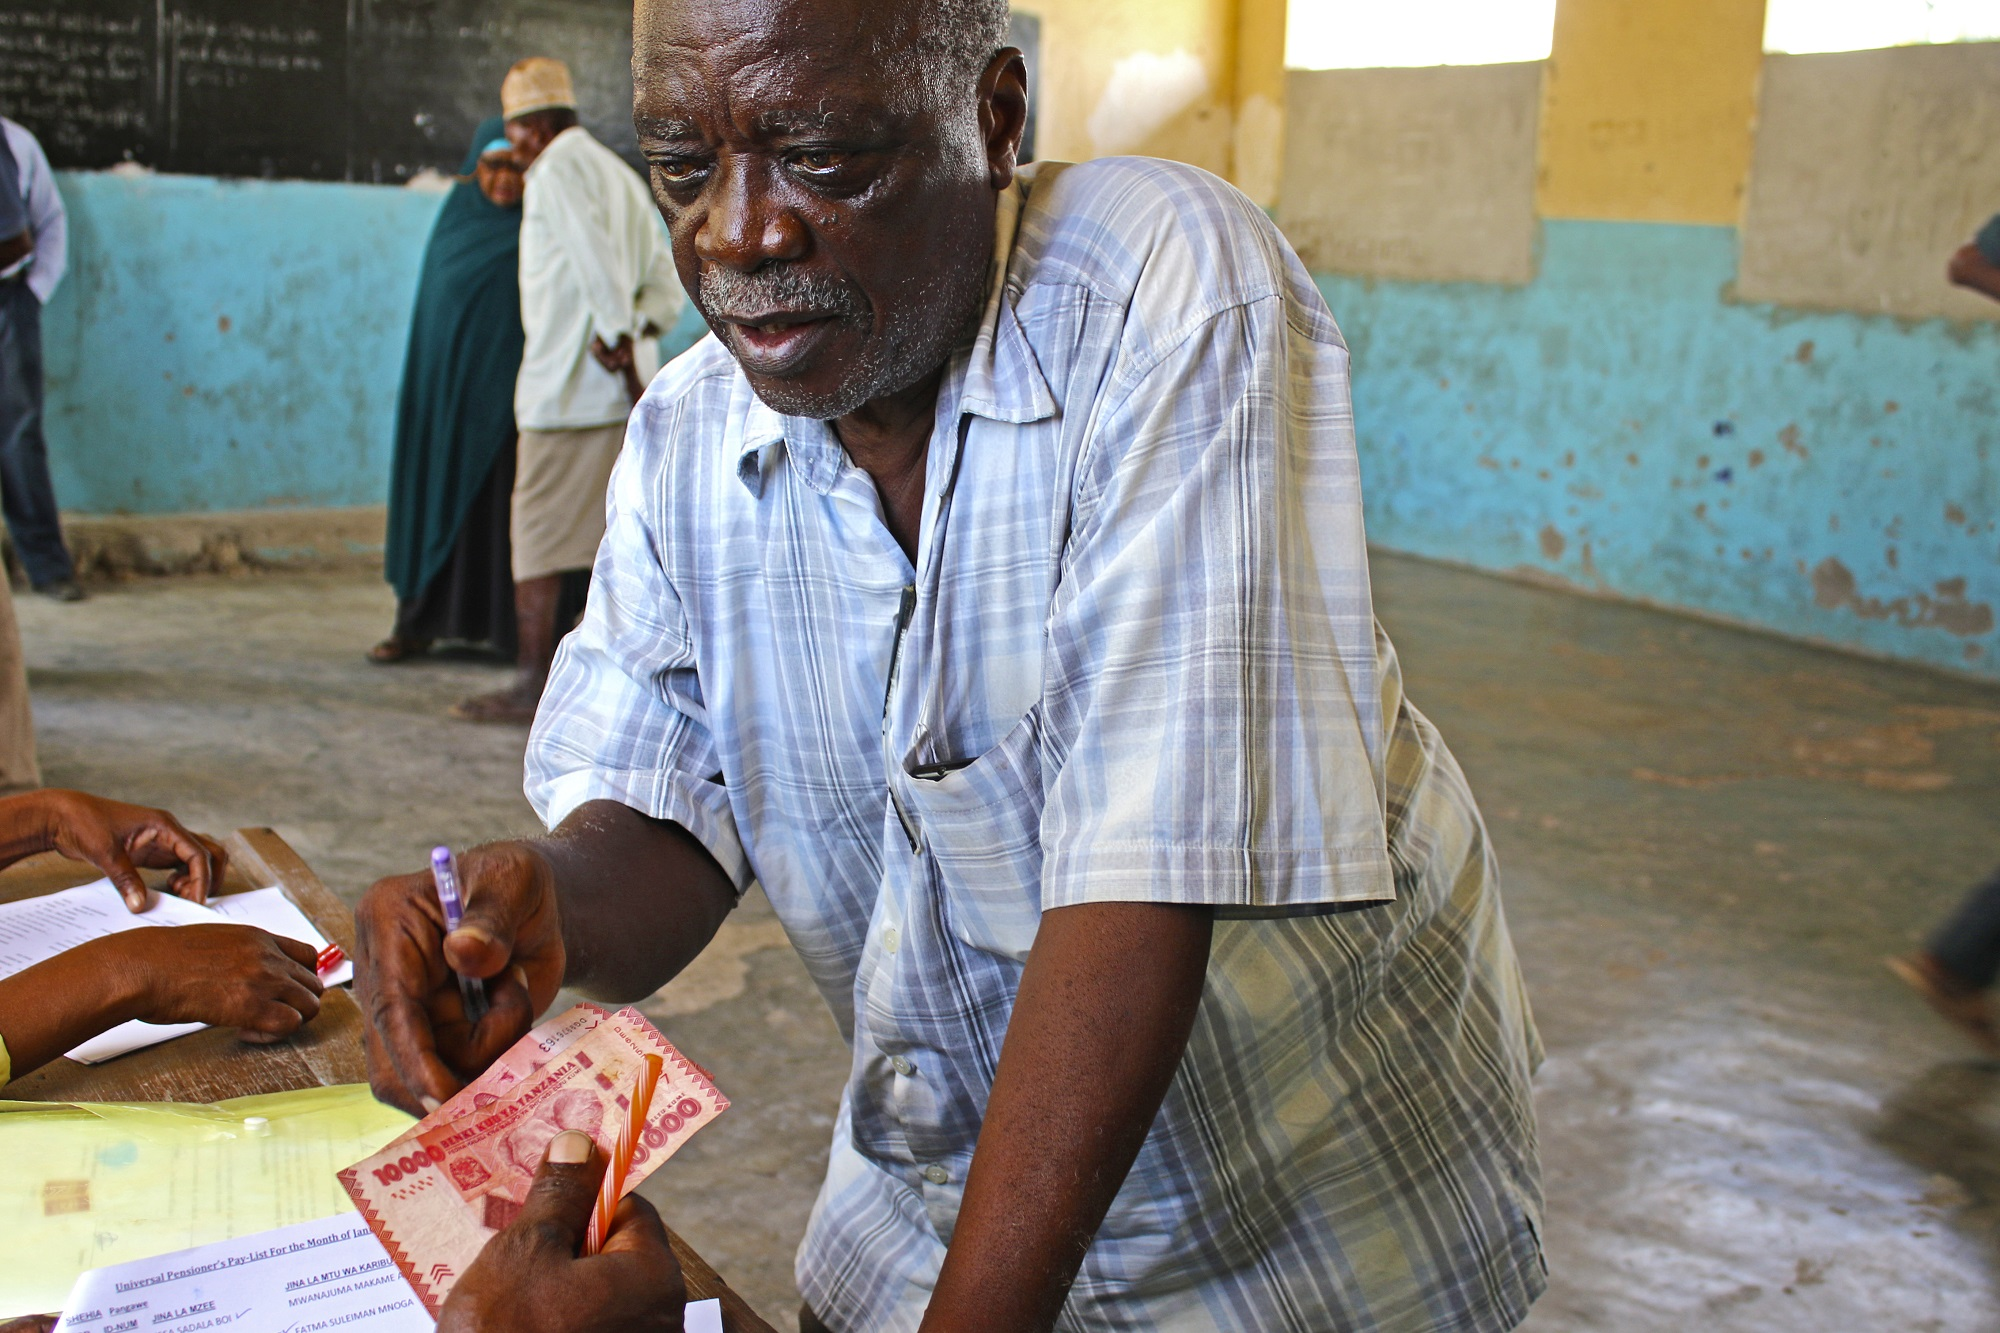 Everyone aged 70 and over Zanzibar have been receiving a pension since April 2016 (c) Ben Small/HelpAge International